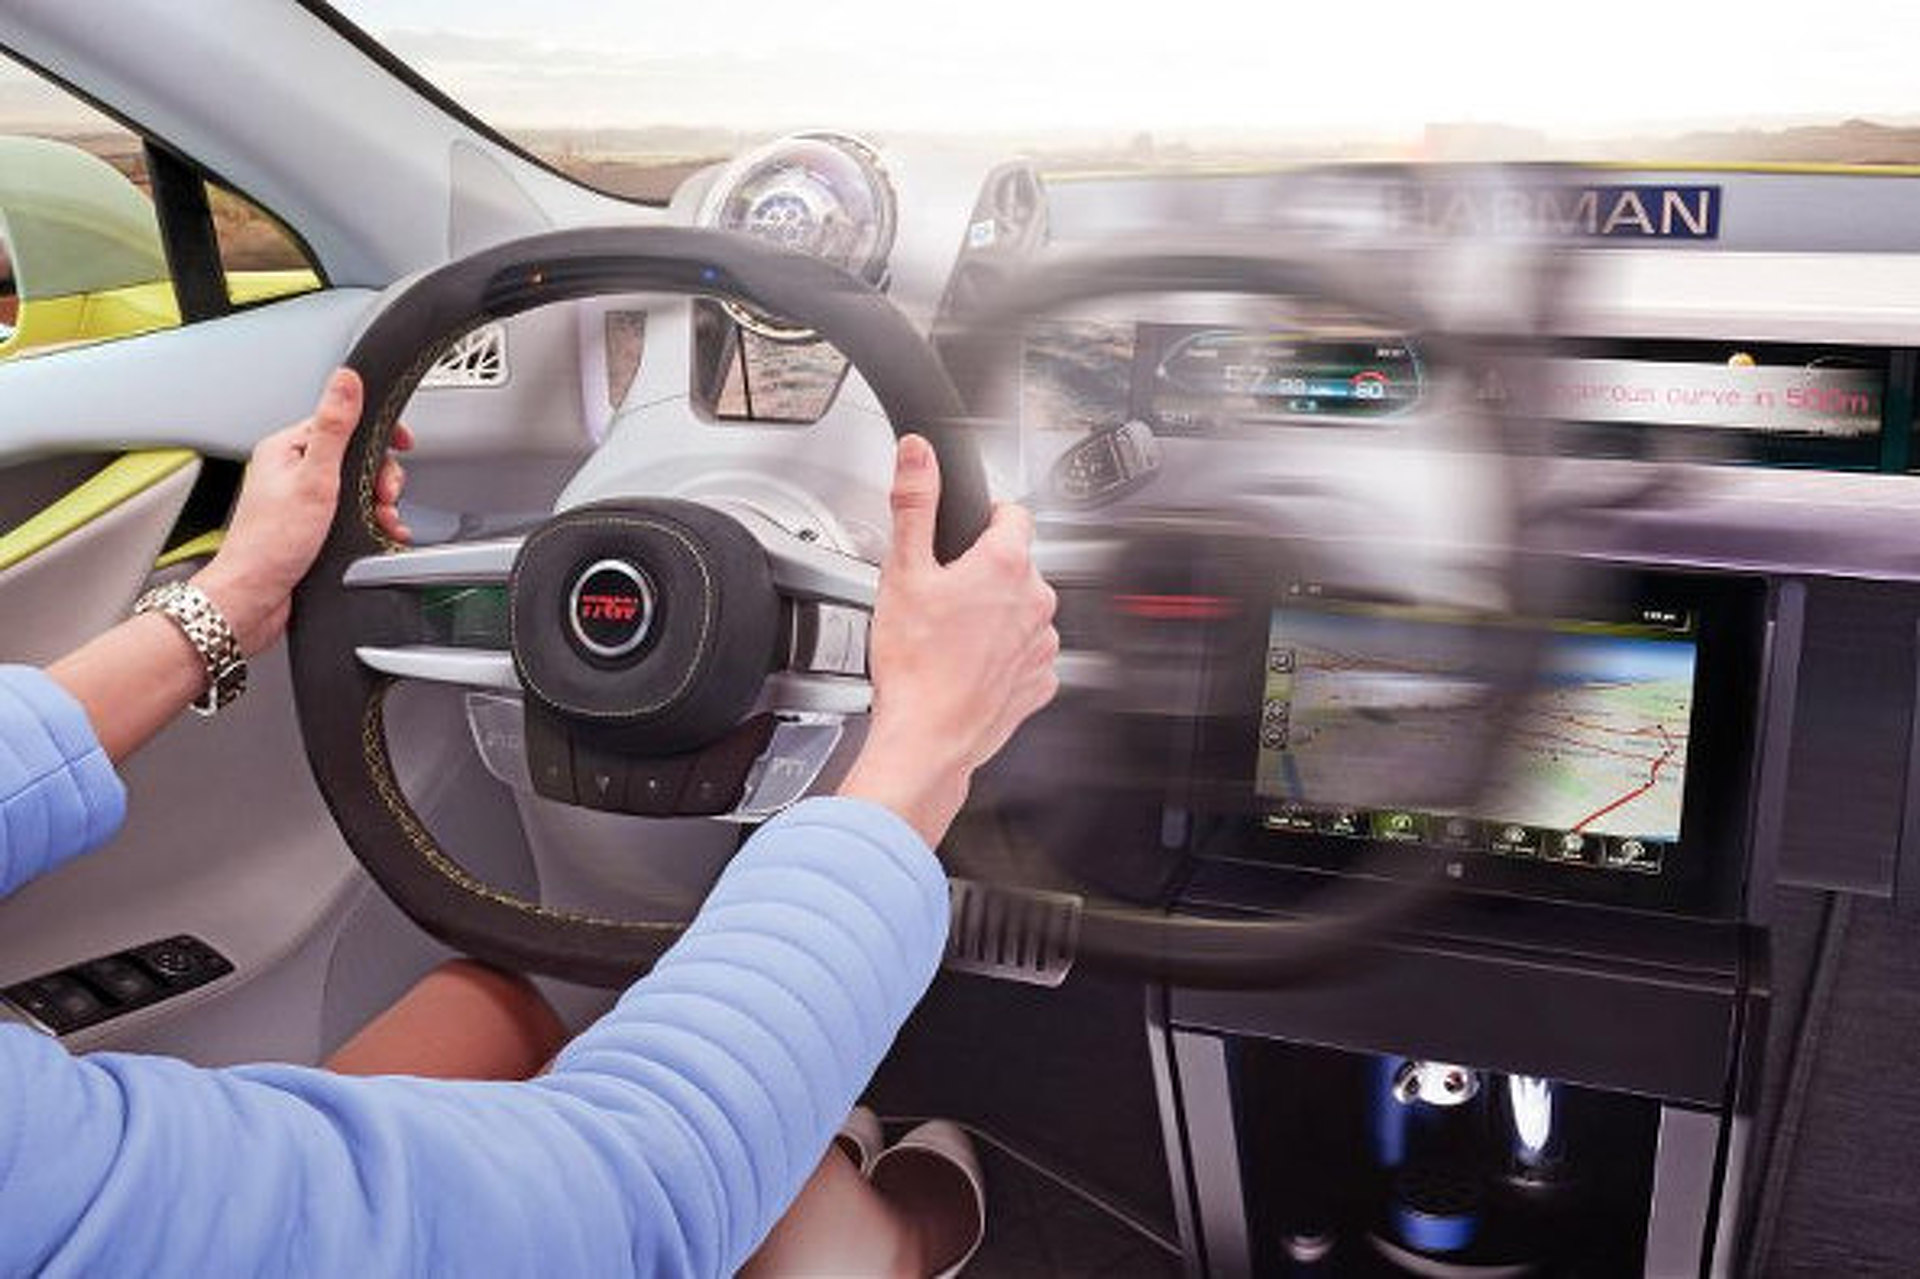 movable steering wheel has a future in autonomous cars Future Cars and Bikes